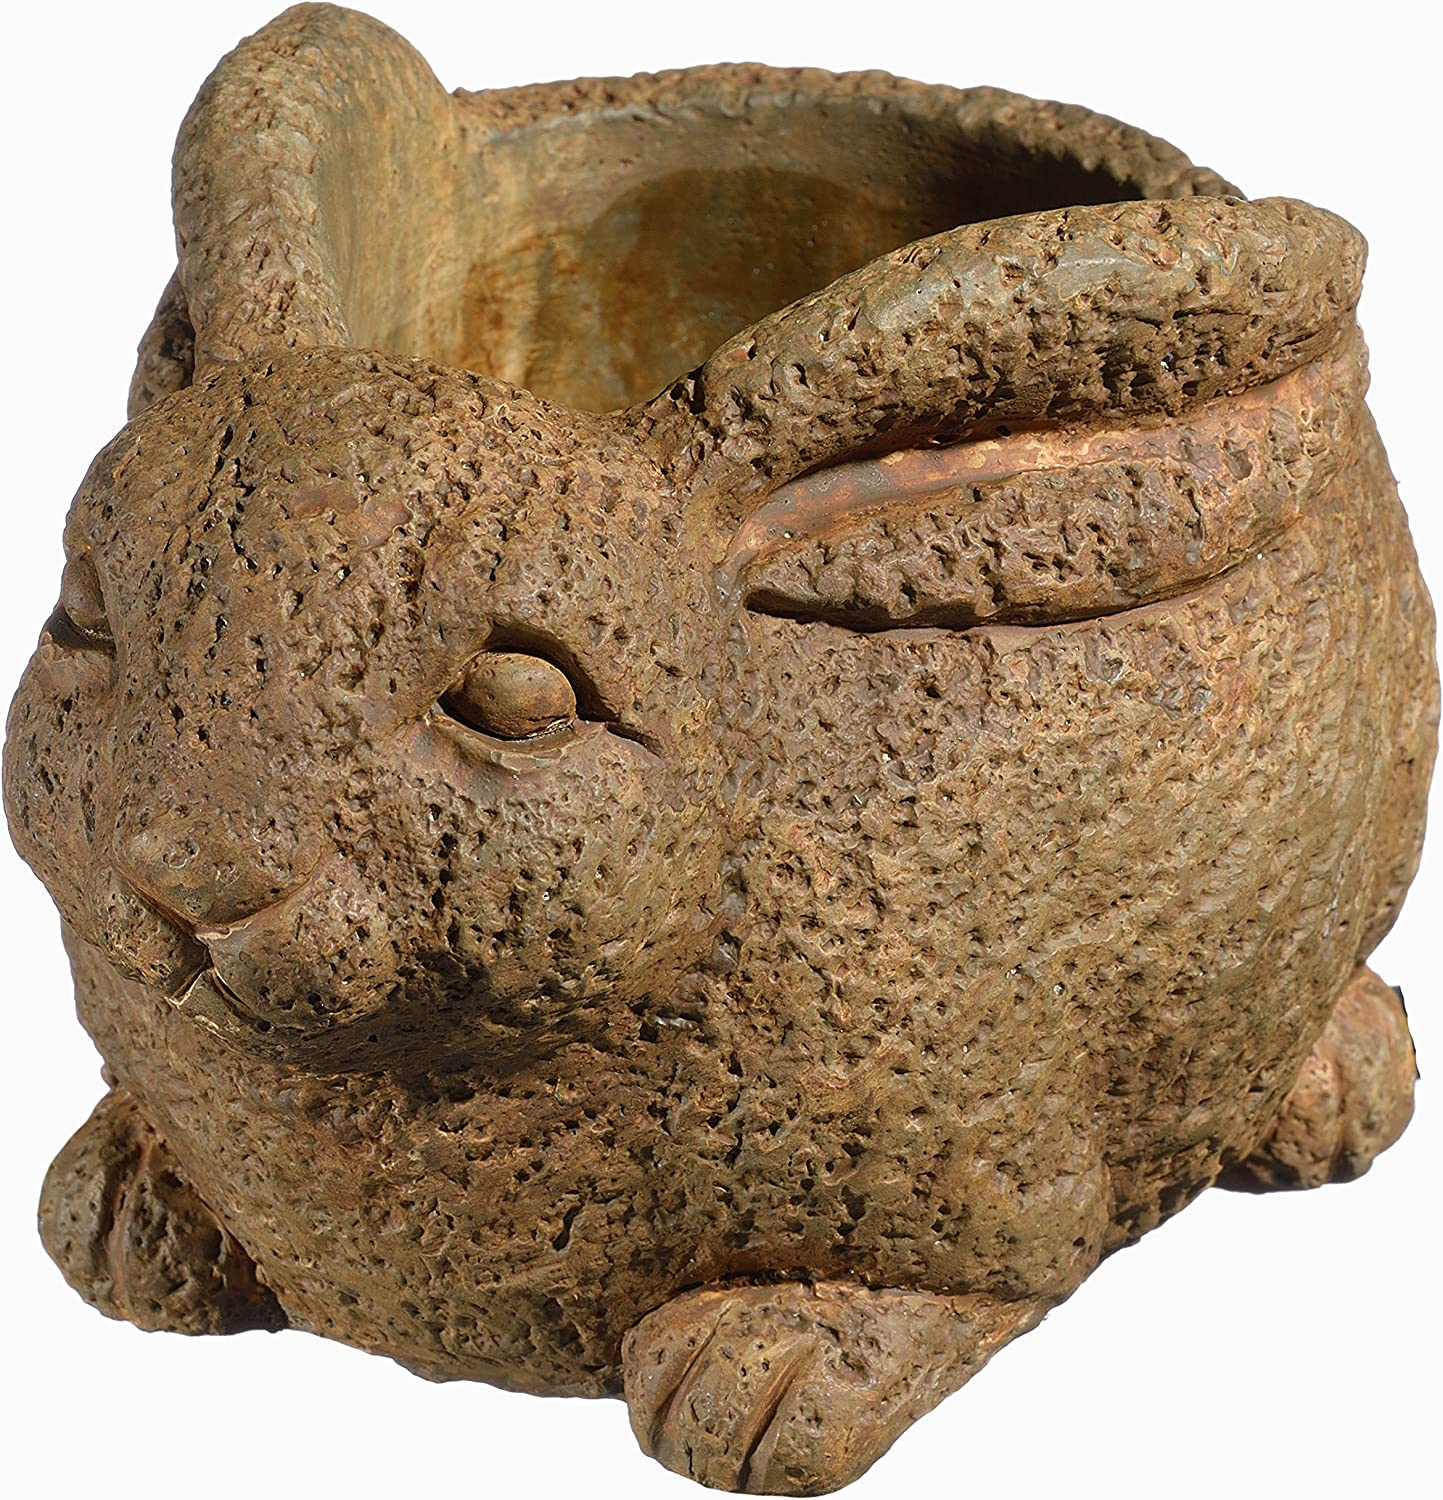 Classic Home and Garden 9/3442R/1 Rabbit Planter, Large, Rust